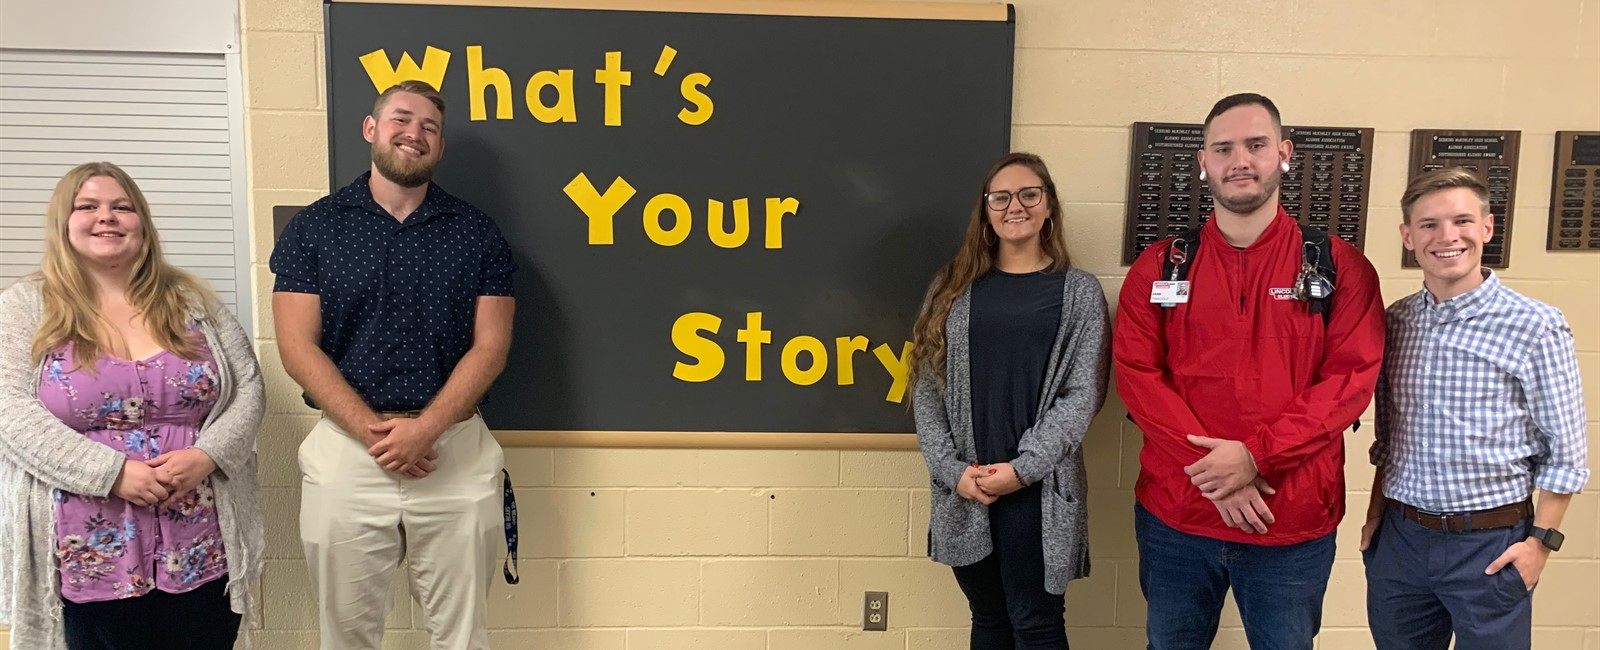 Thank you so much to our All Star Alumni George Clark, Christopher Clemens, Destinee Green, Emma Holodnak and Zane Twaddle for sharing their stories with our students!